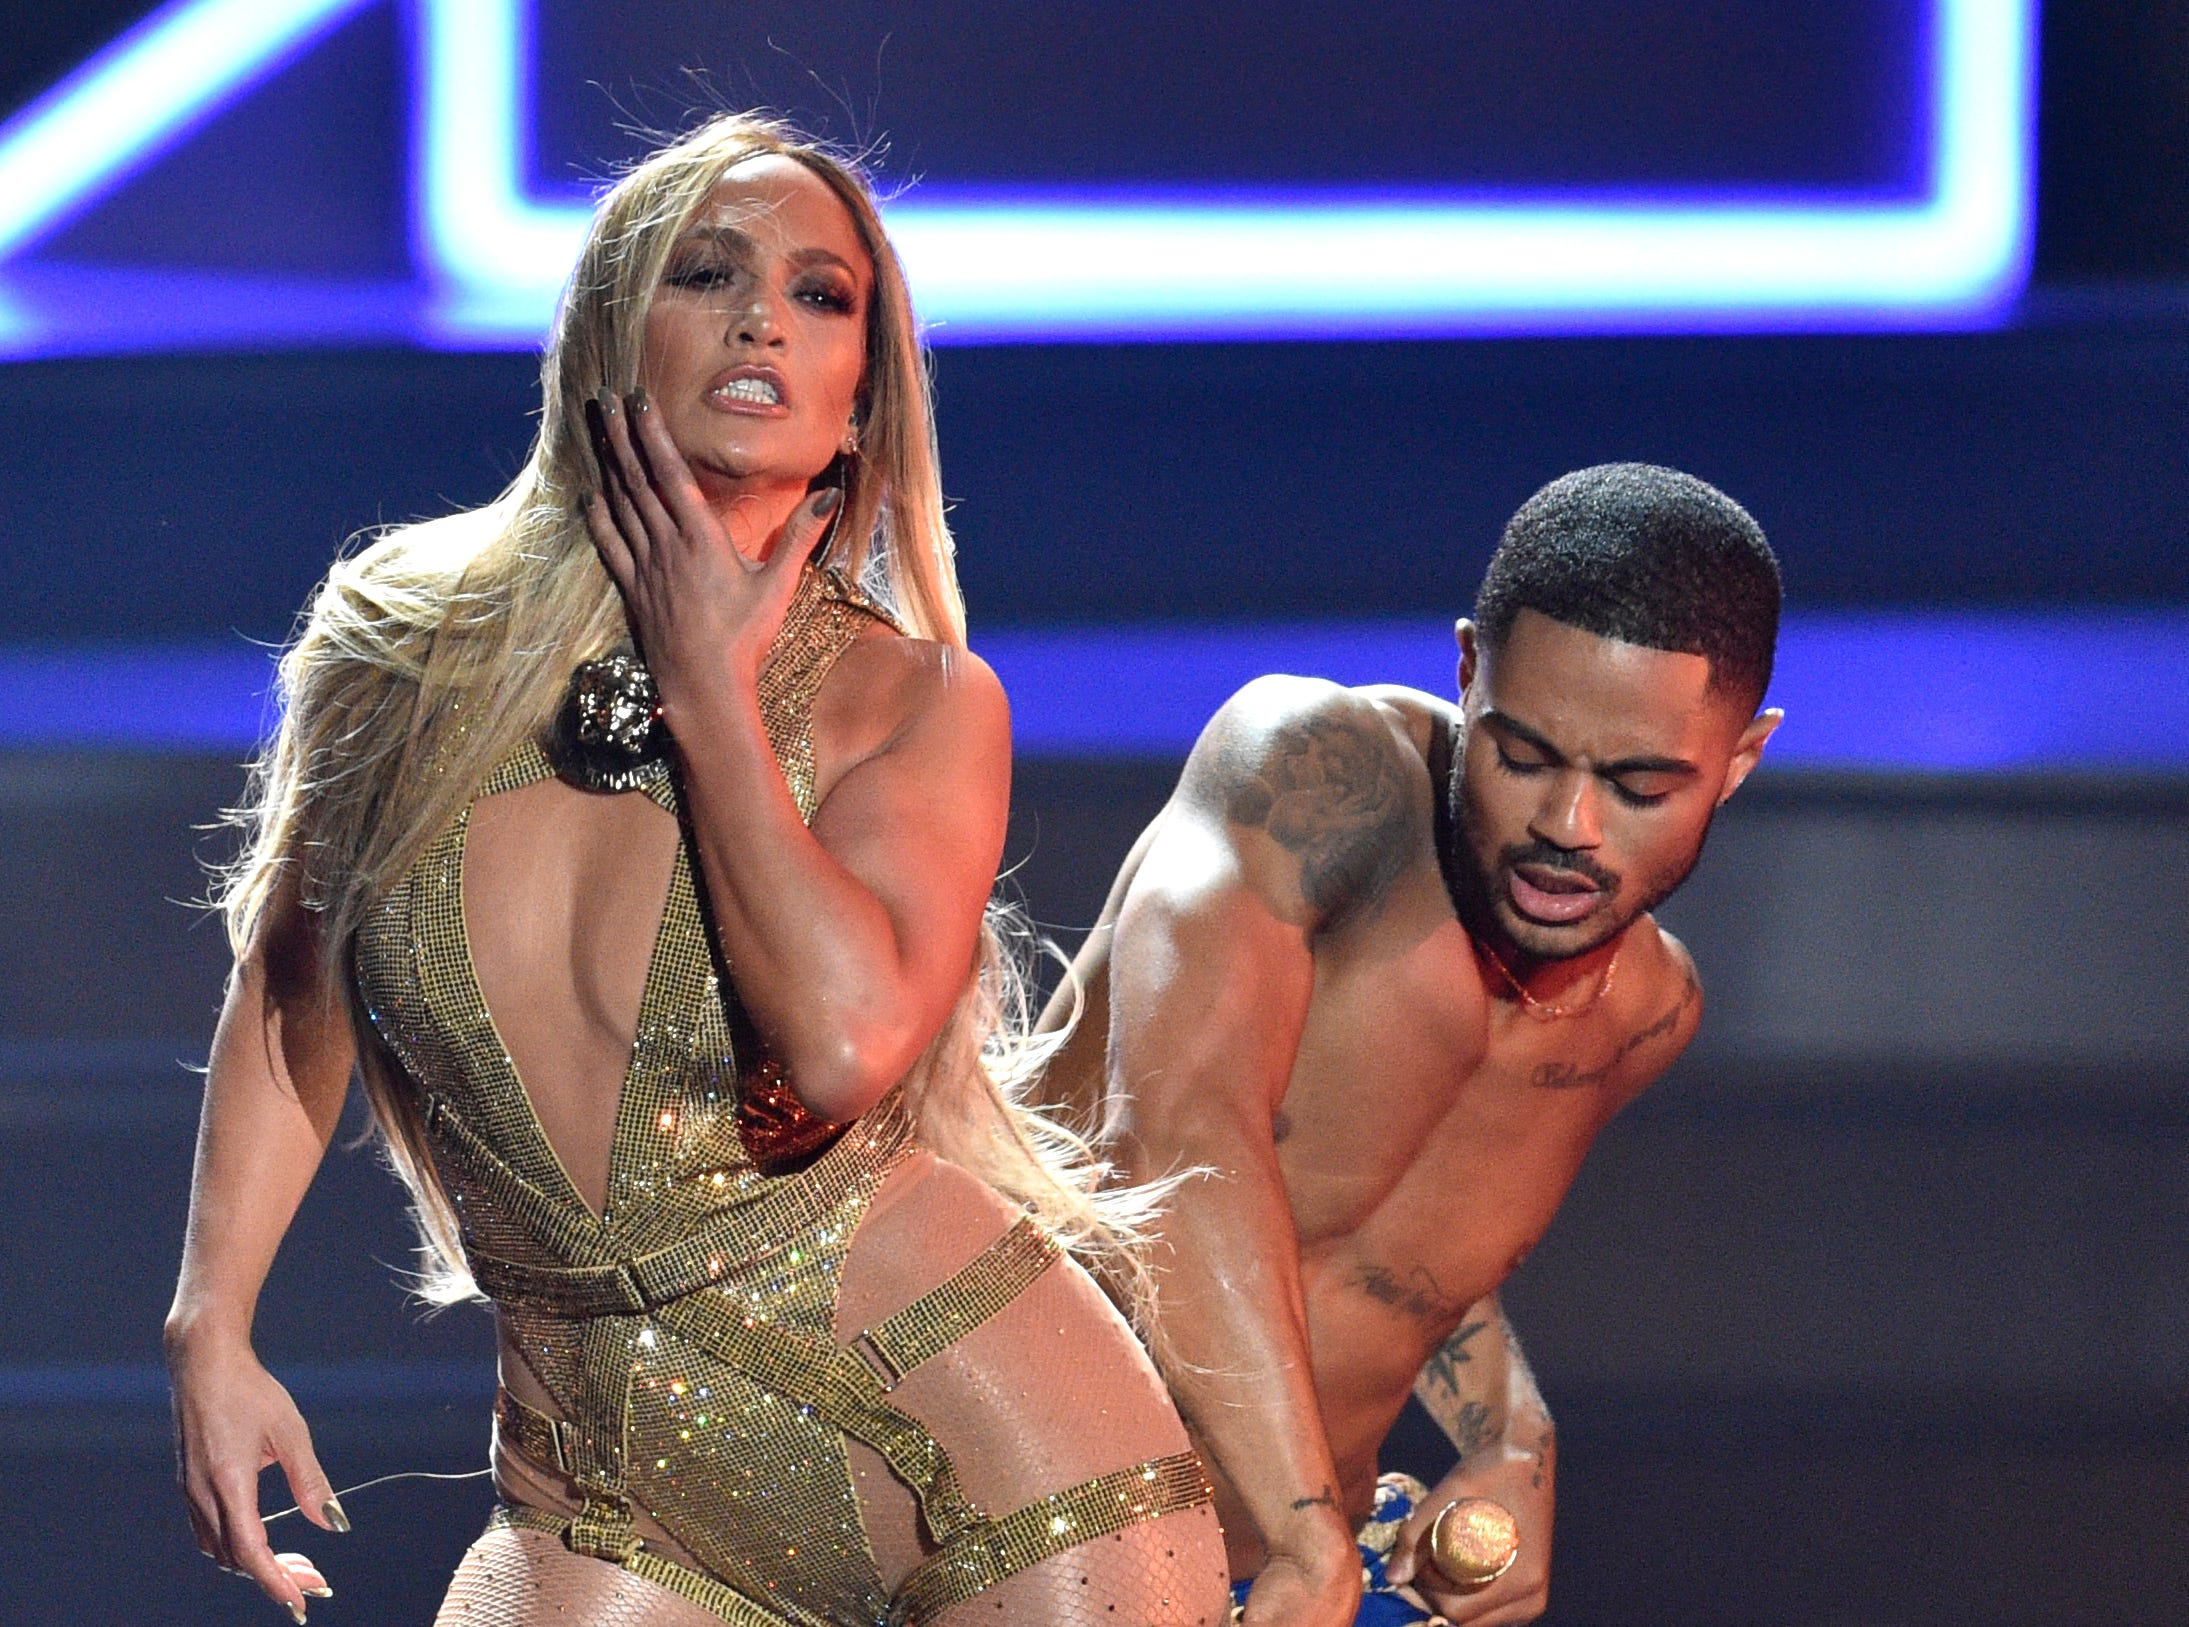 Video Vanguard award winner Jennifer Lopez showed off some sexy moves while performing at the MTV Video Music Awards.